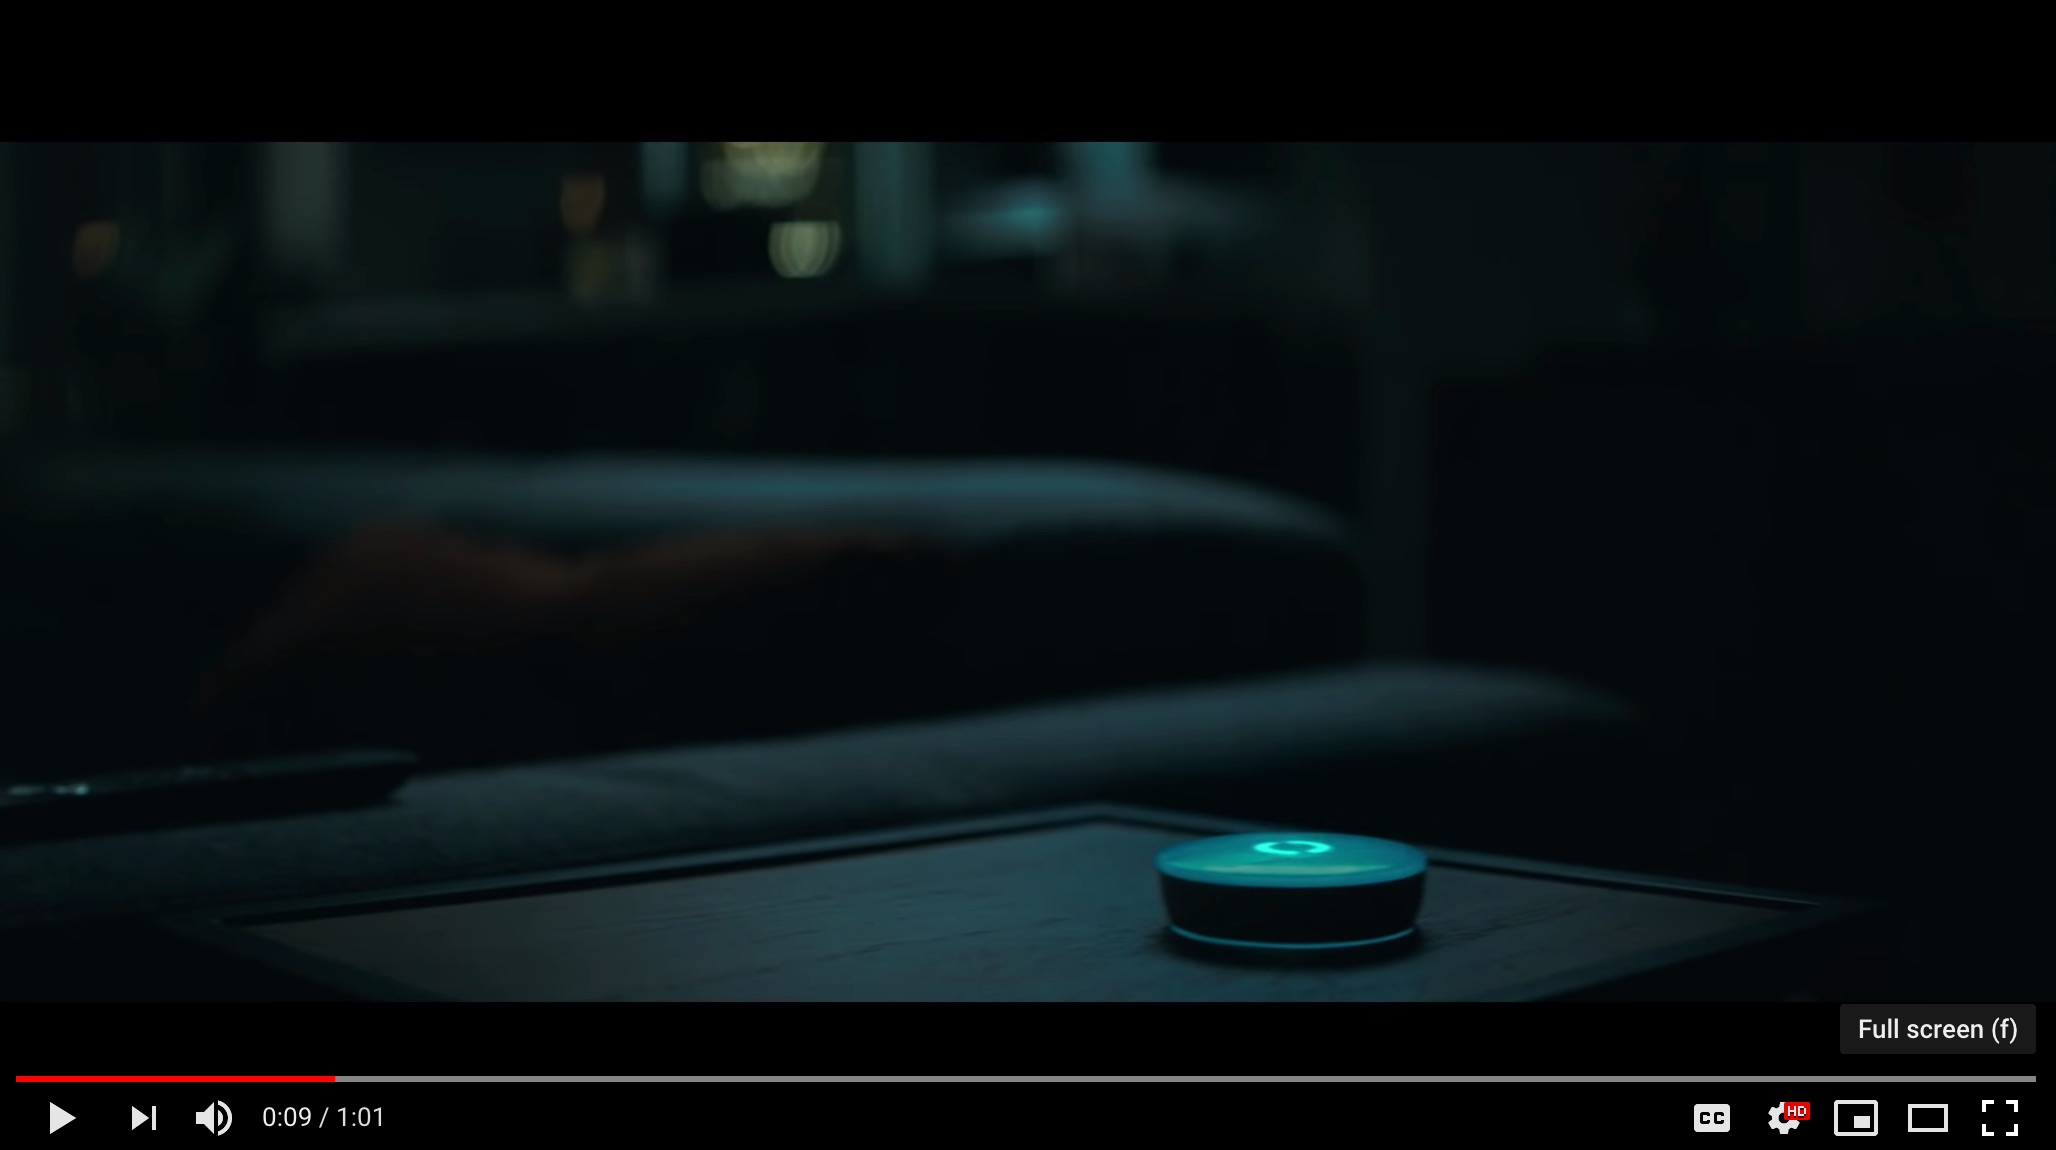 Still image from video of a device that looks like an Echo Dot